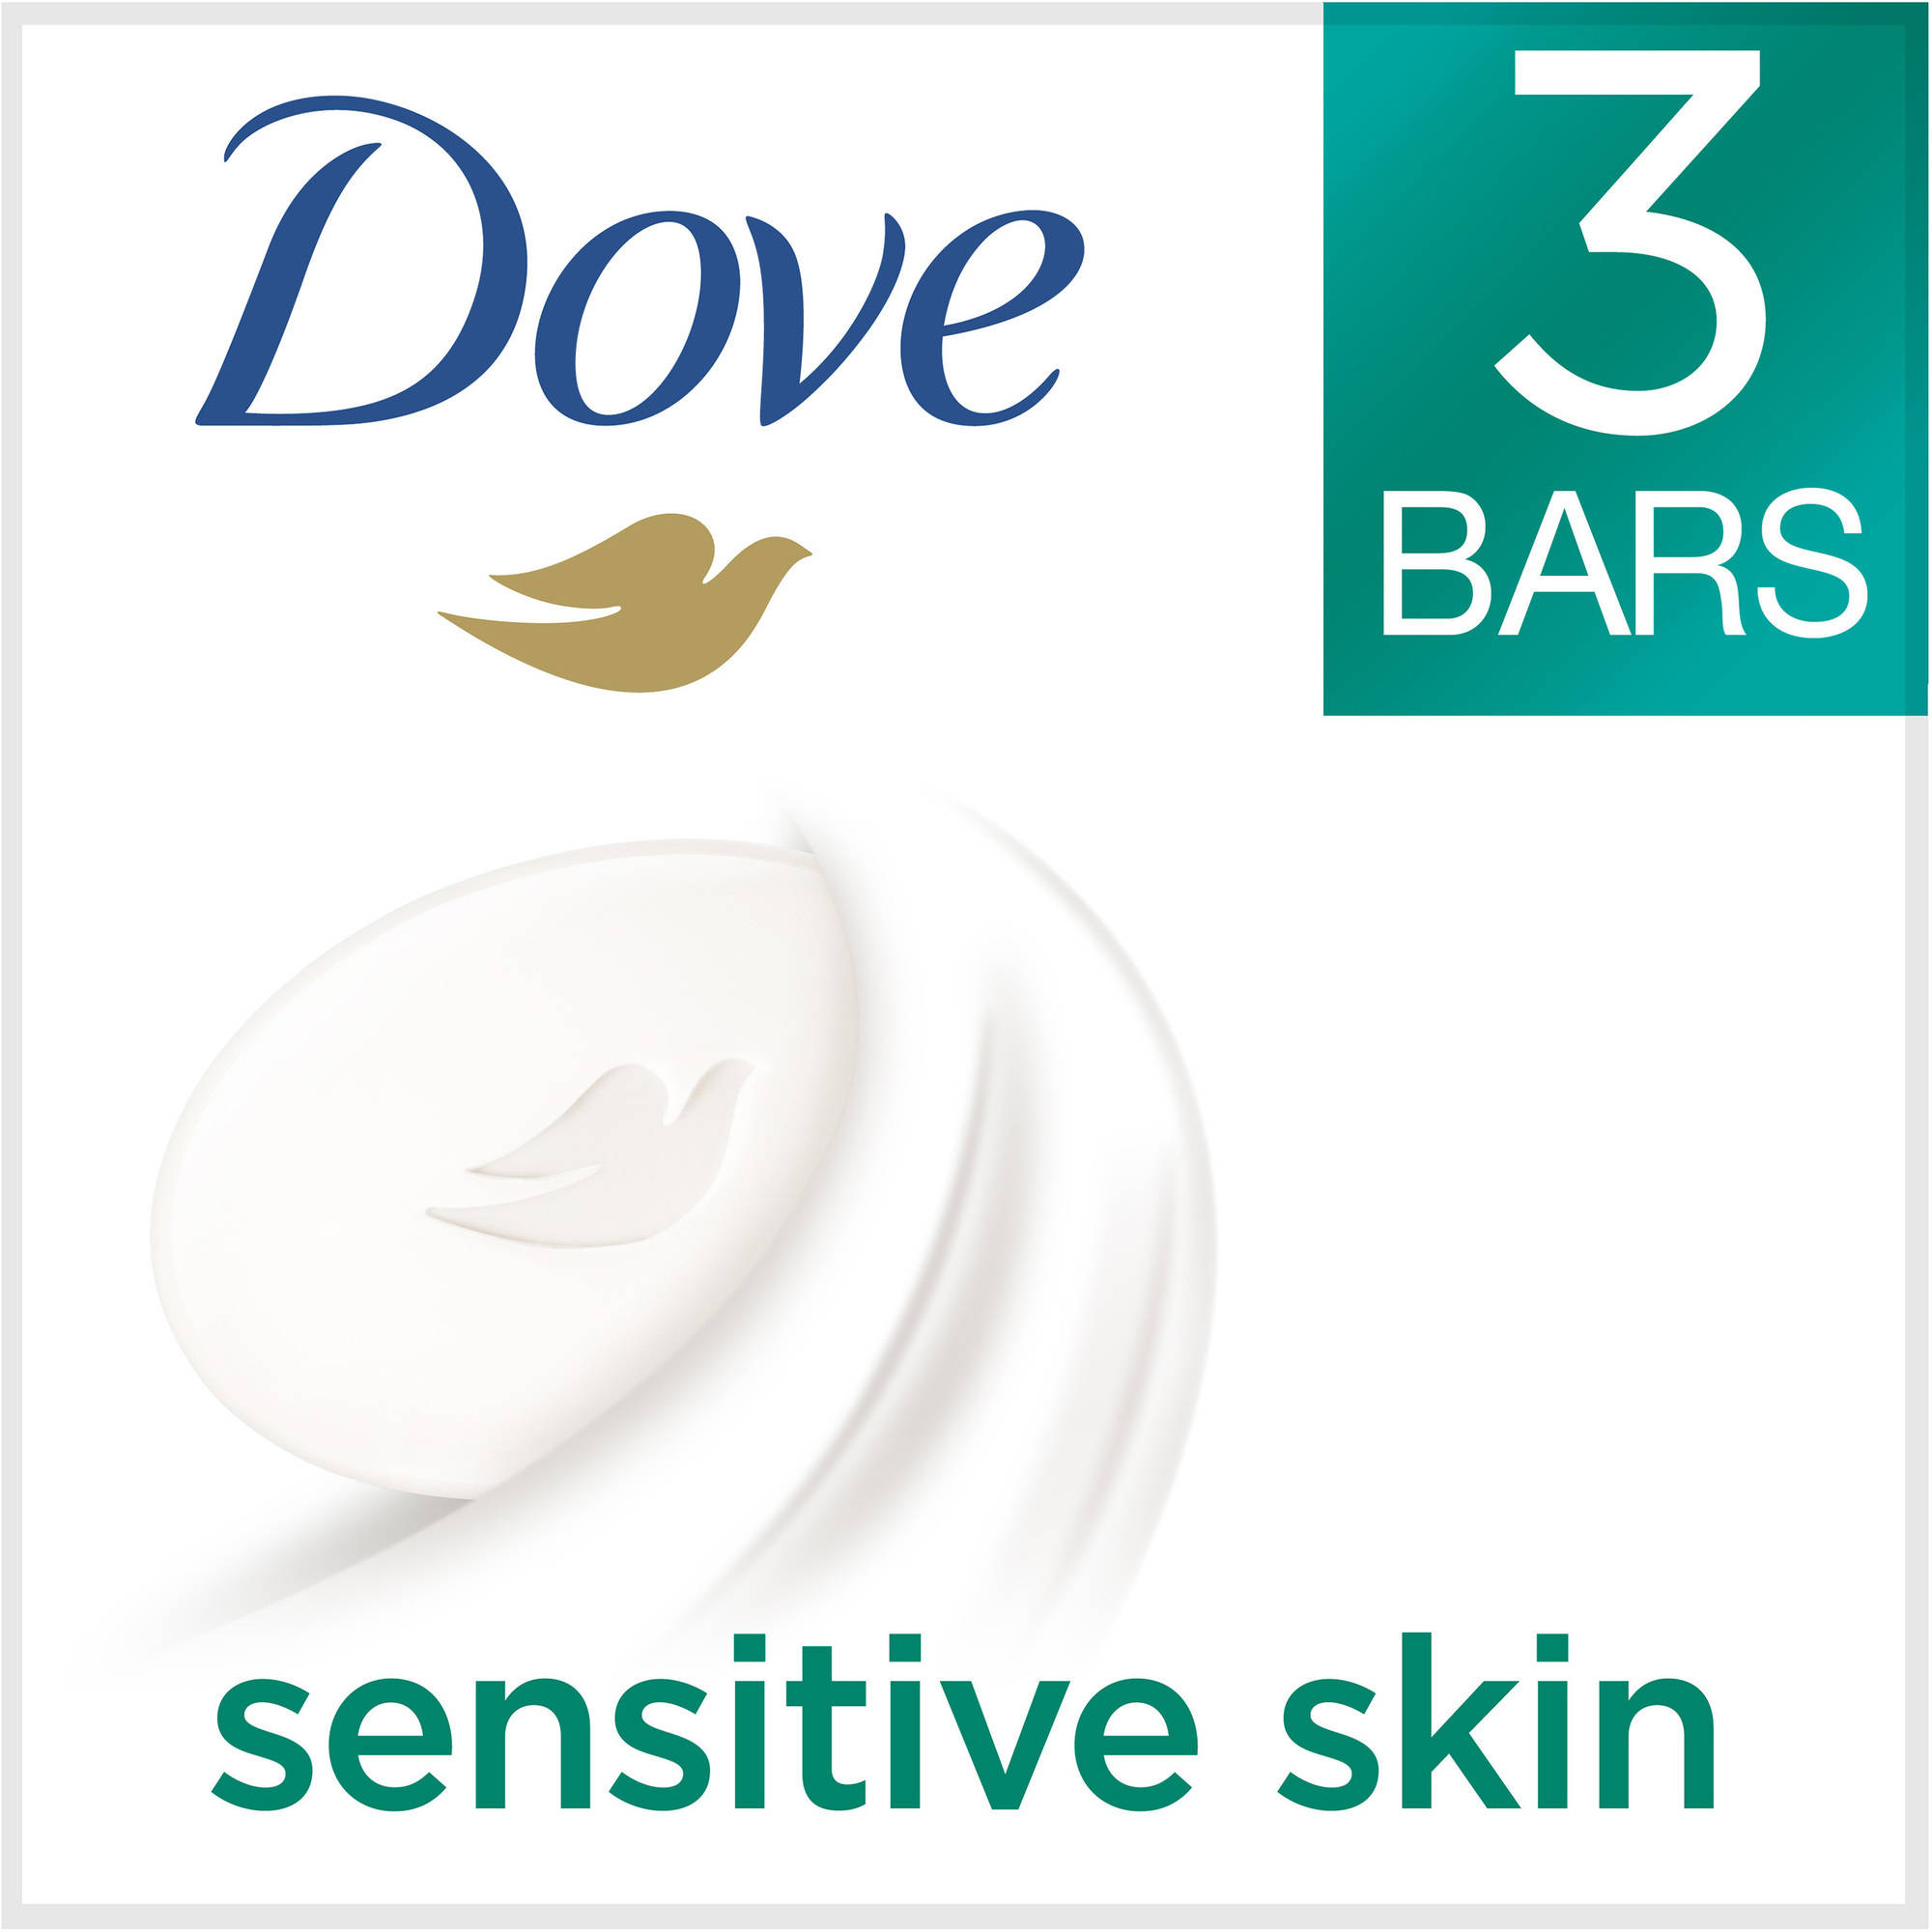 Dove Sensitive Skin Beauty Bar, 3.15 oz, 3 Bar